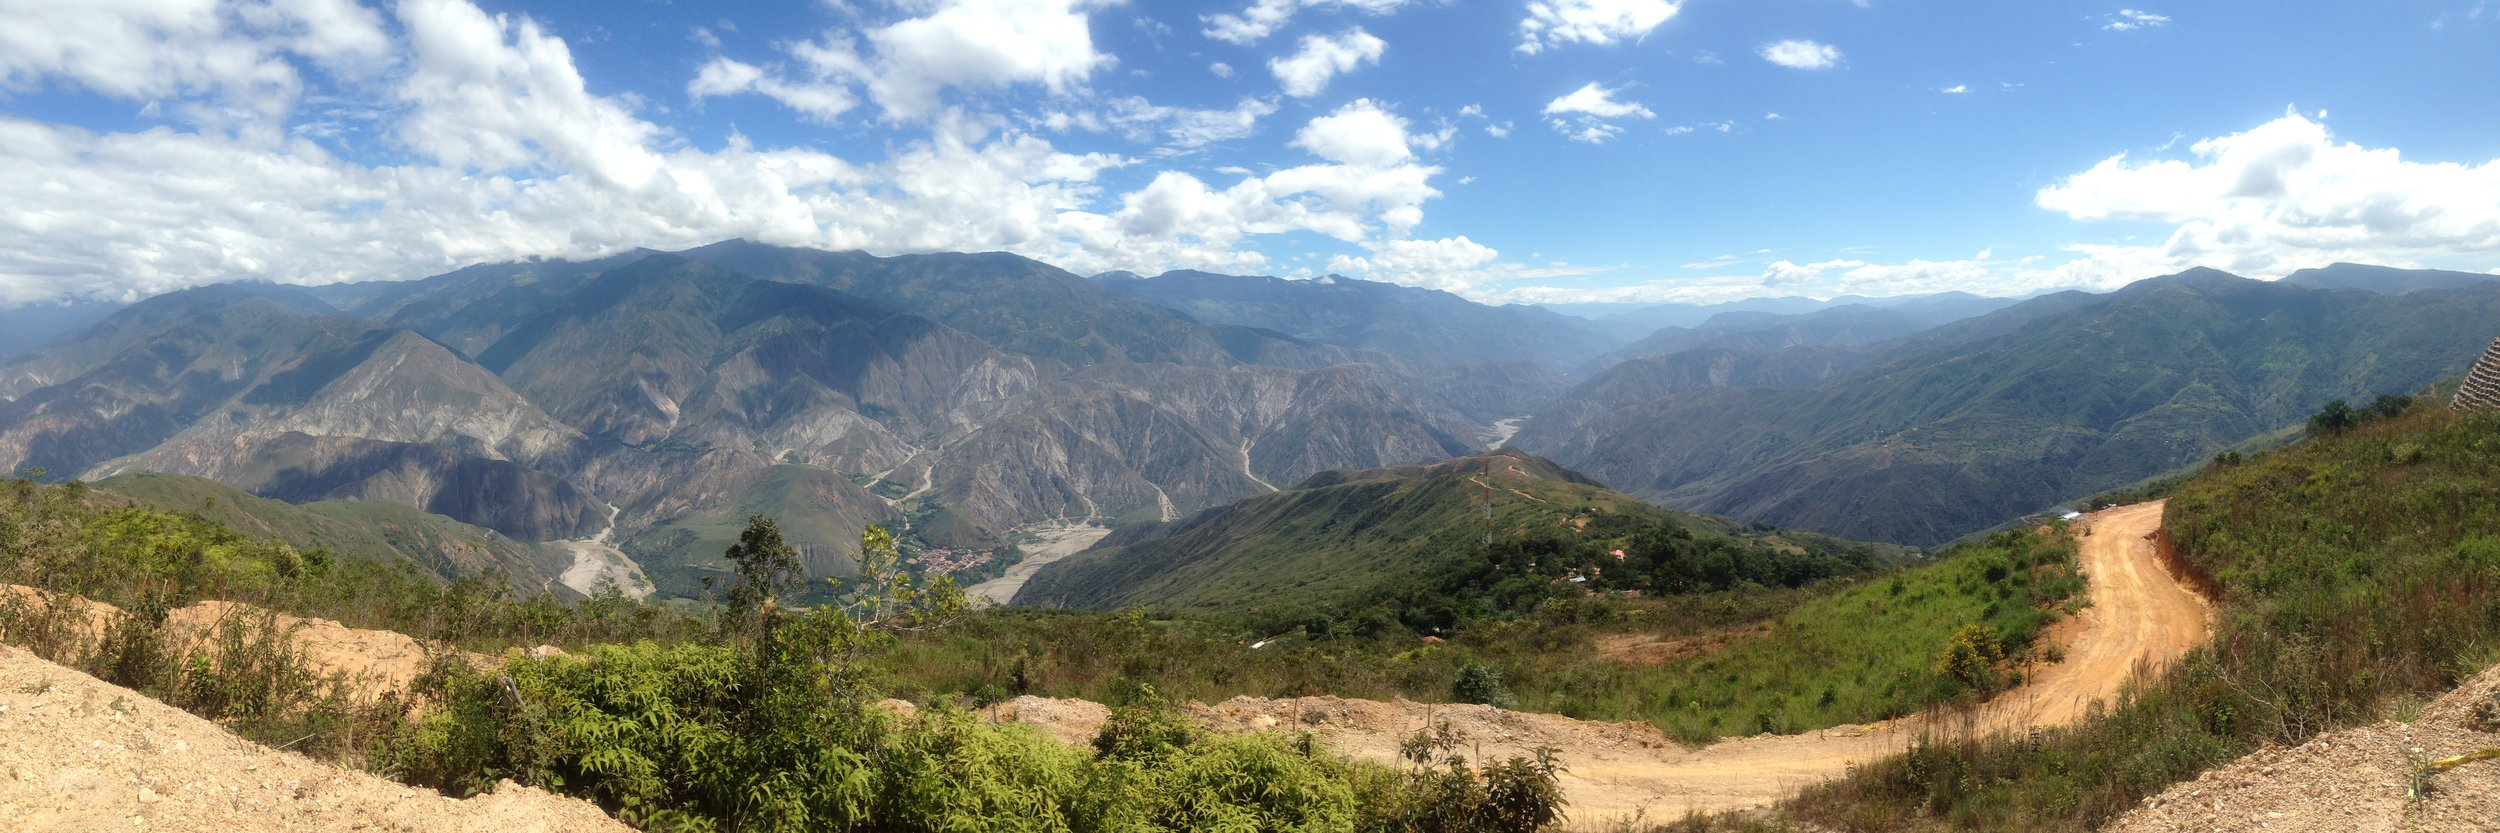 The winding road to Chicamocha Canyon, the second deepest canyon in the world where we went skydiving with Parapente.